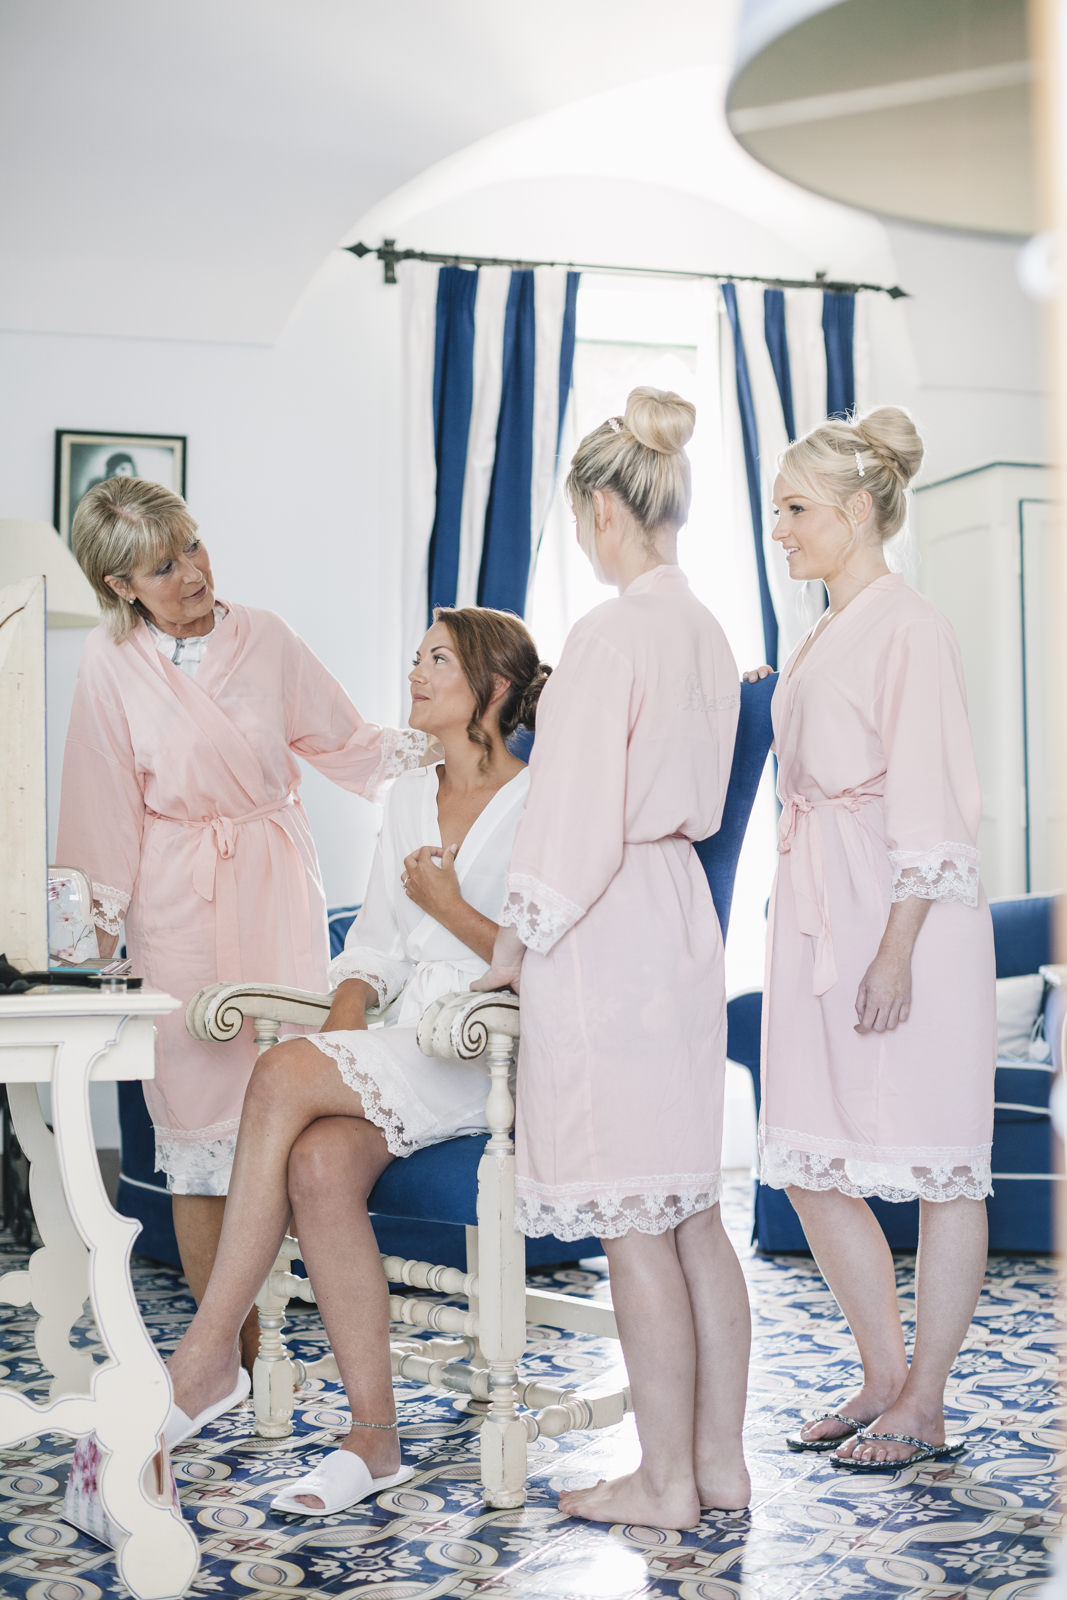 the bride surrounded by the bridesmaids during the preparation